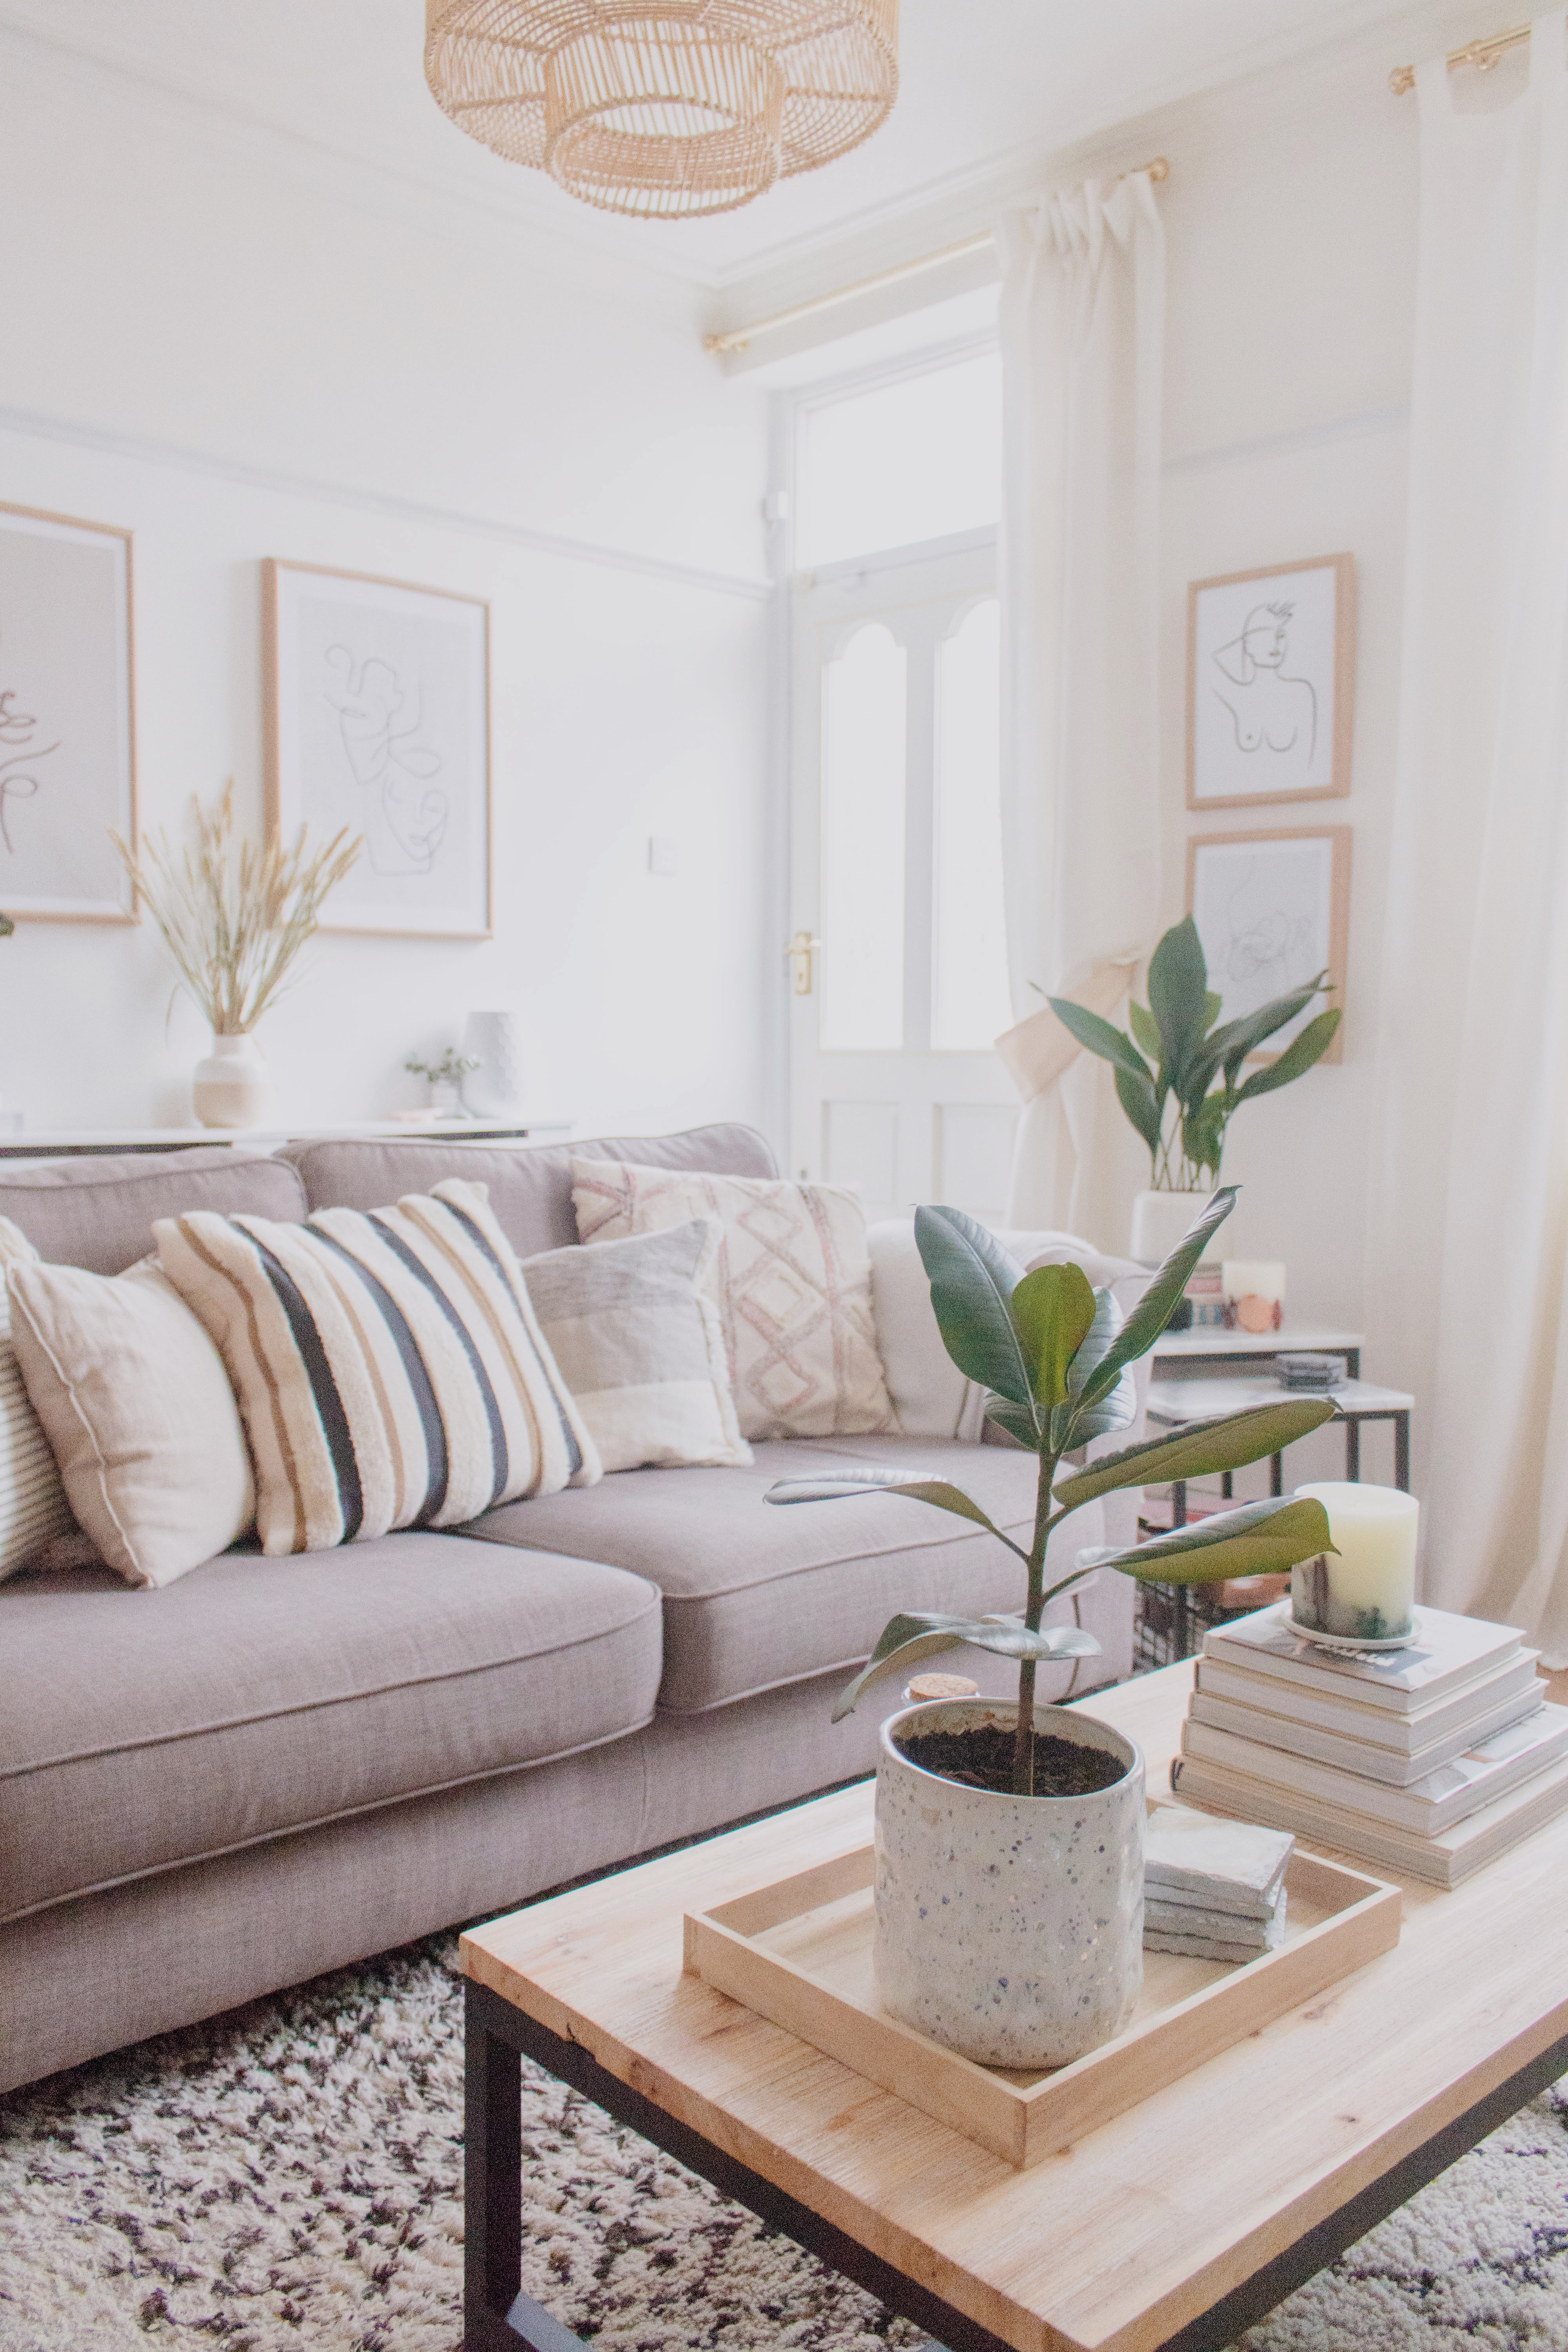 an edited lifestyle interior home decor q&a